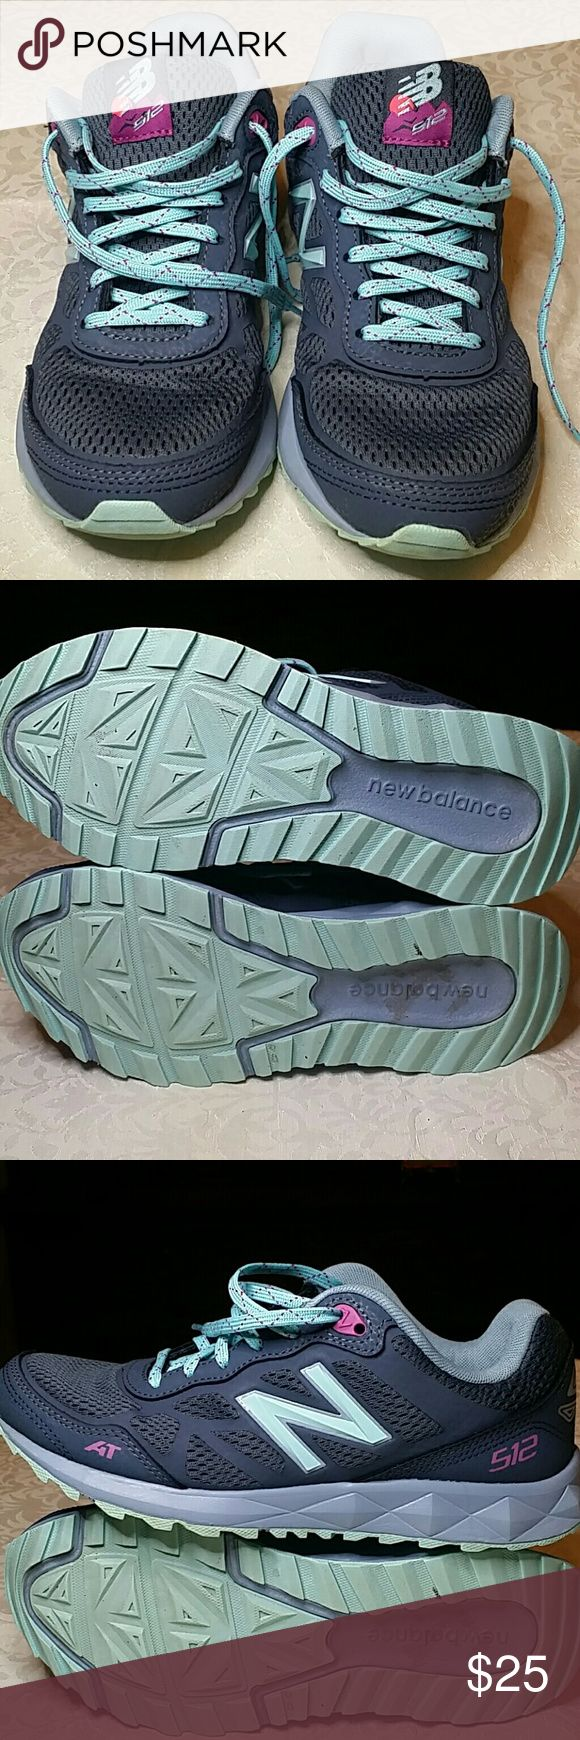 New Balance size 8 Trail Running Shoes Sharp looking charcoal with teal accent New Balance size 8 Trail Running Shoes. Mom wore the 12 or 15 times. These shoes are in excellent, clean condition. Some minor staining on the bottom of the soles. New Balance Shoes Athletic Shoes